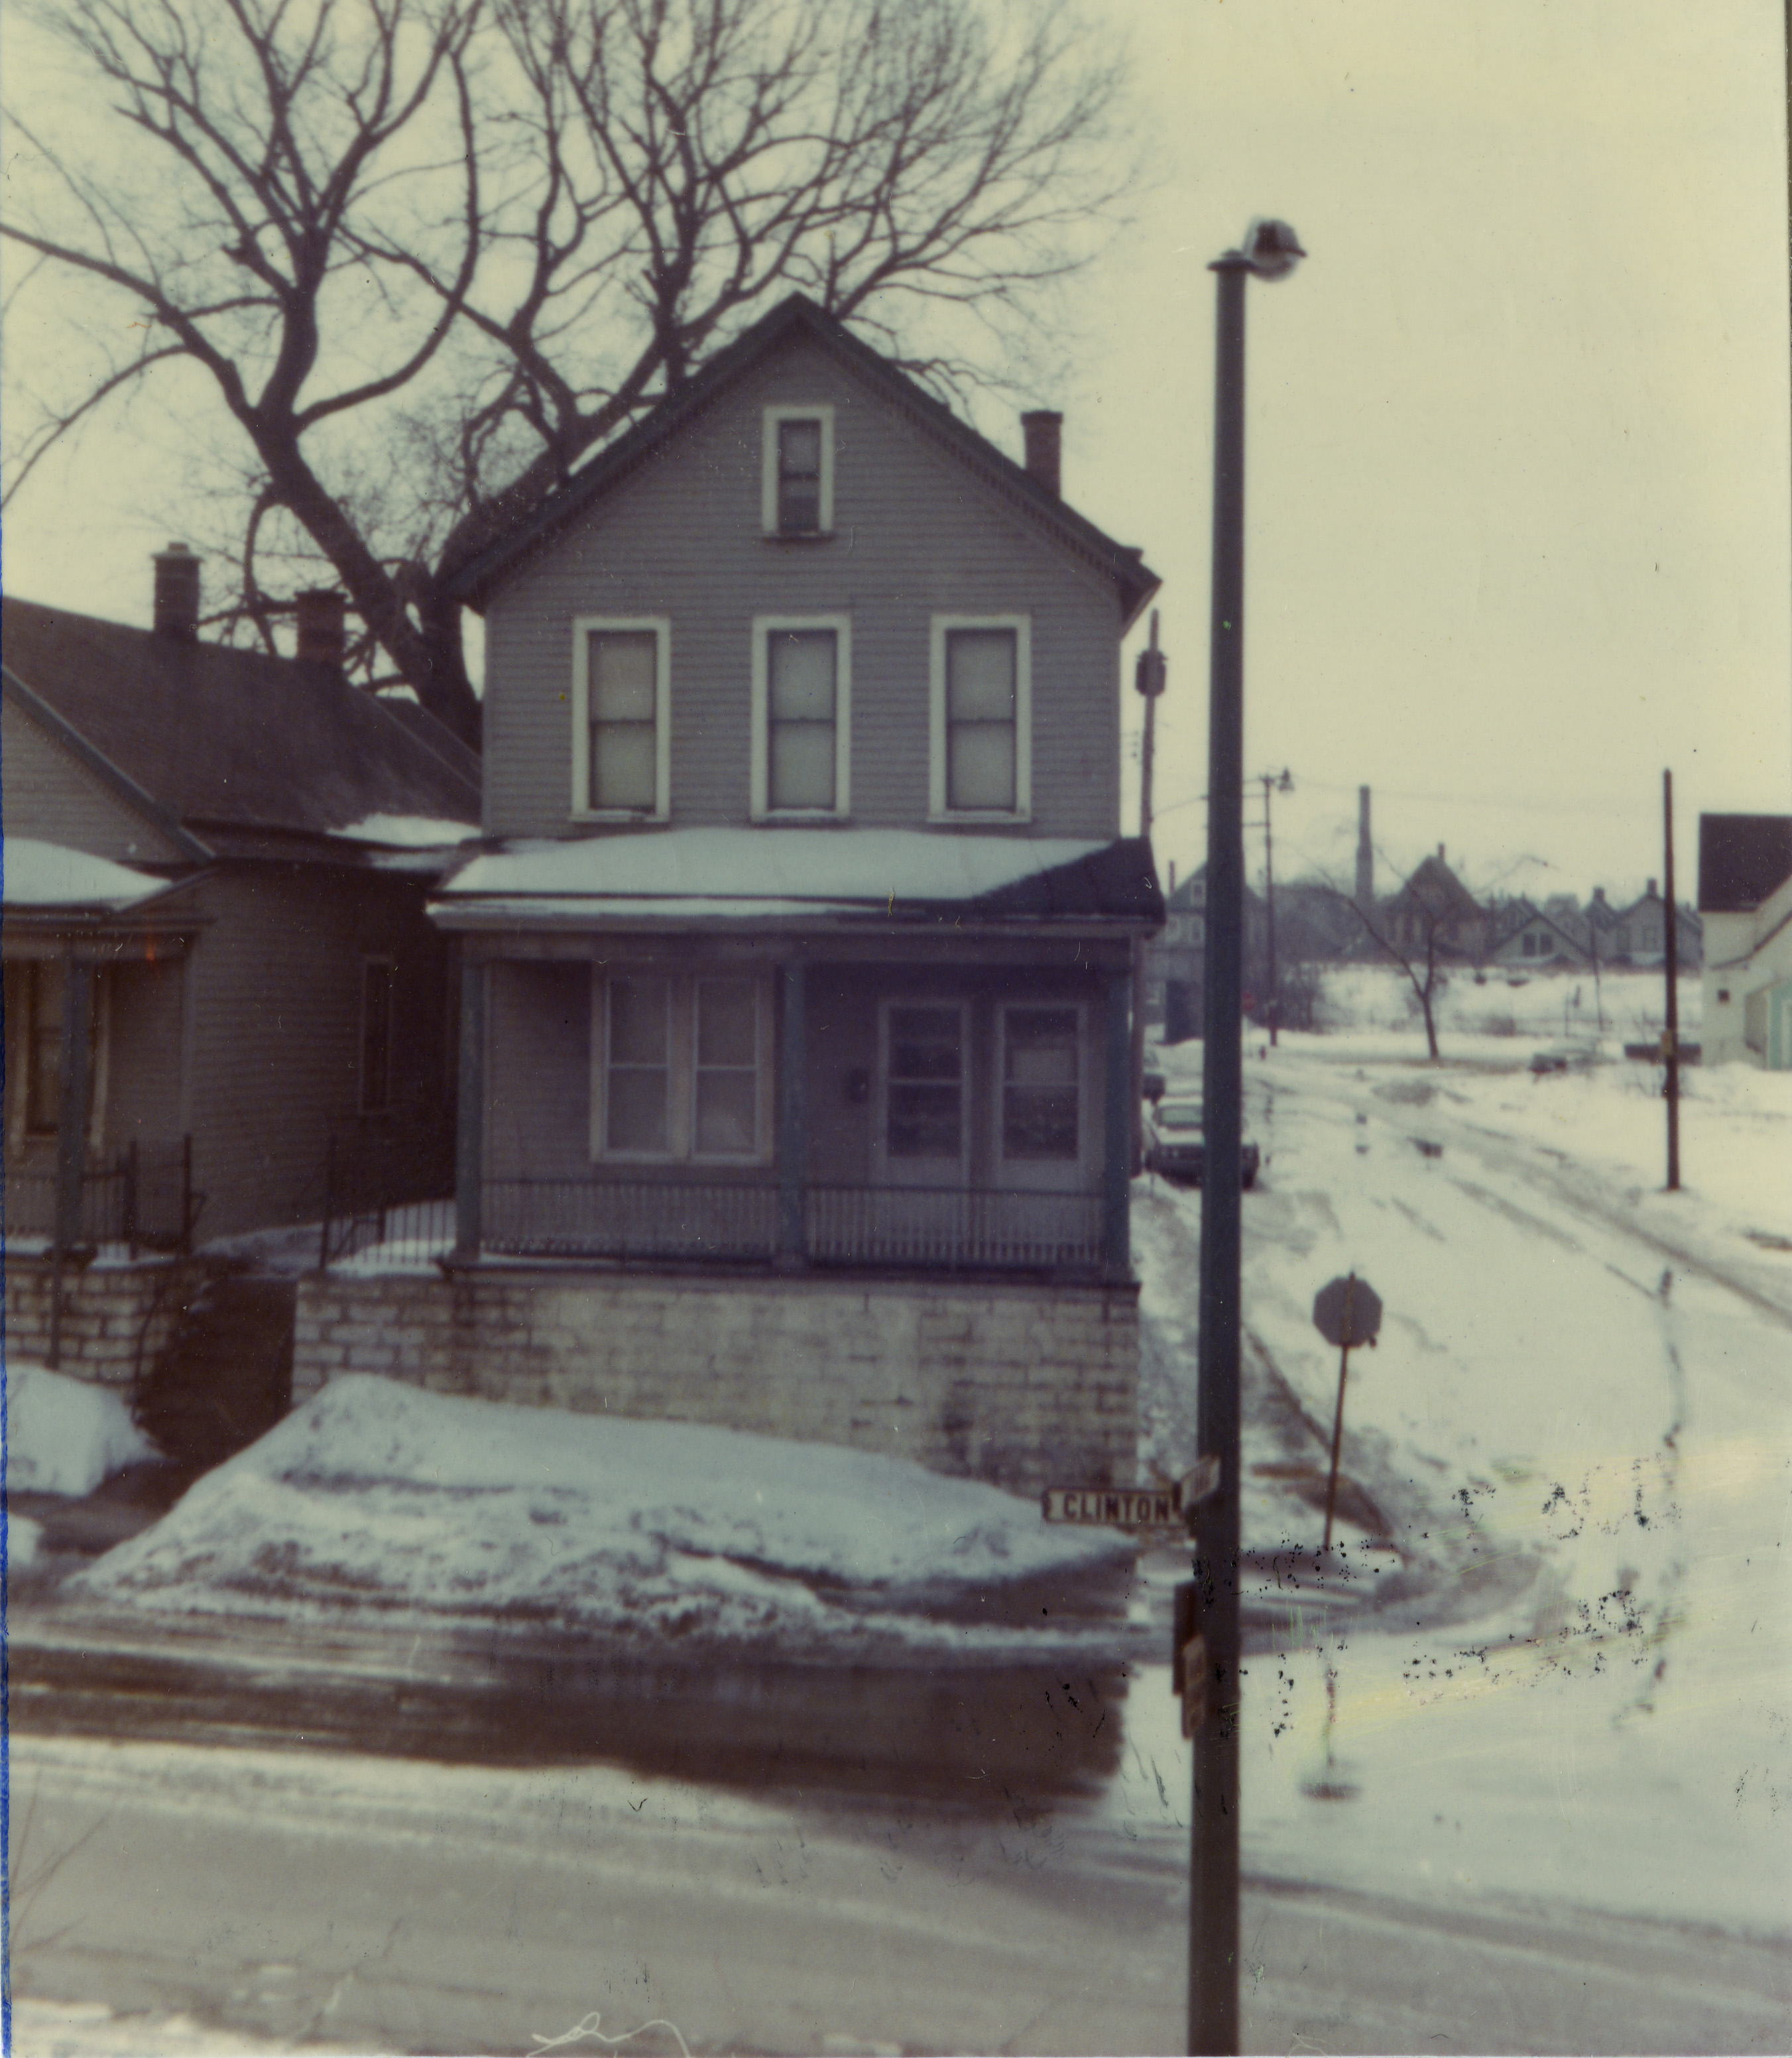 House depicted in Ice Glare, as photographed by James Vullo (Charles E. Burchfield Archives/James J. Vullo photo)